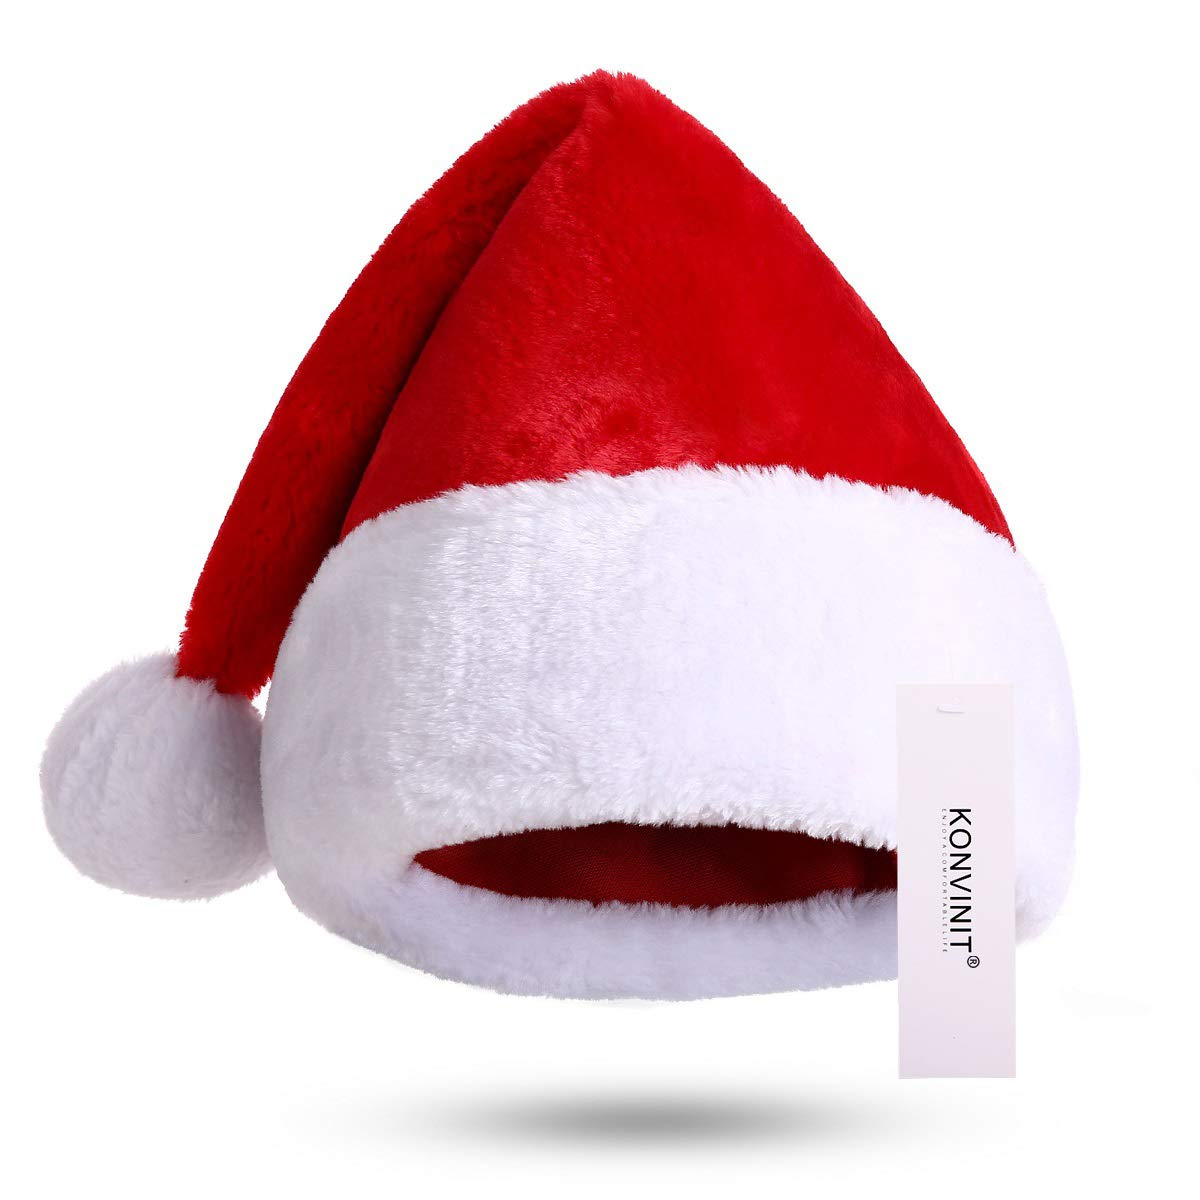 750108fb5650a KONVINIT Santa Hat, Xmas Hats, Father Christmas Hat Adults Deluxe Plush  Santa Claus Hat Costume Christmas Ornaments